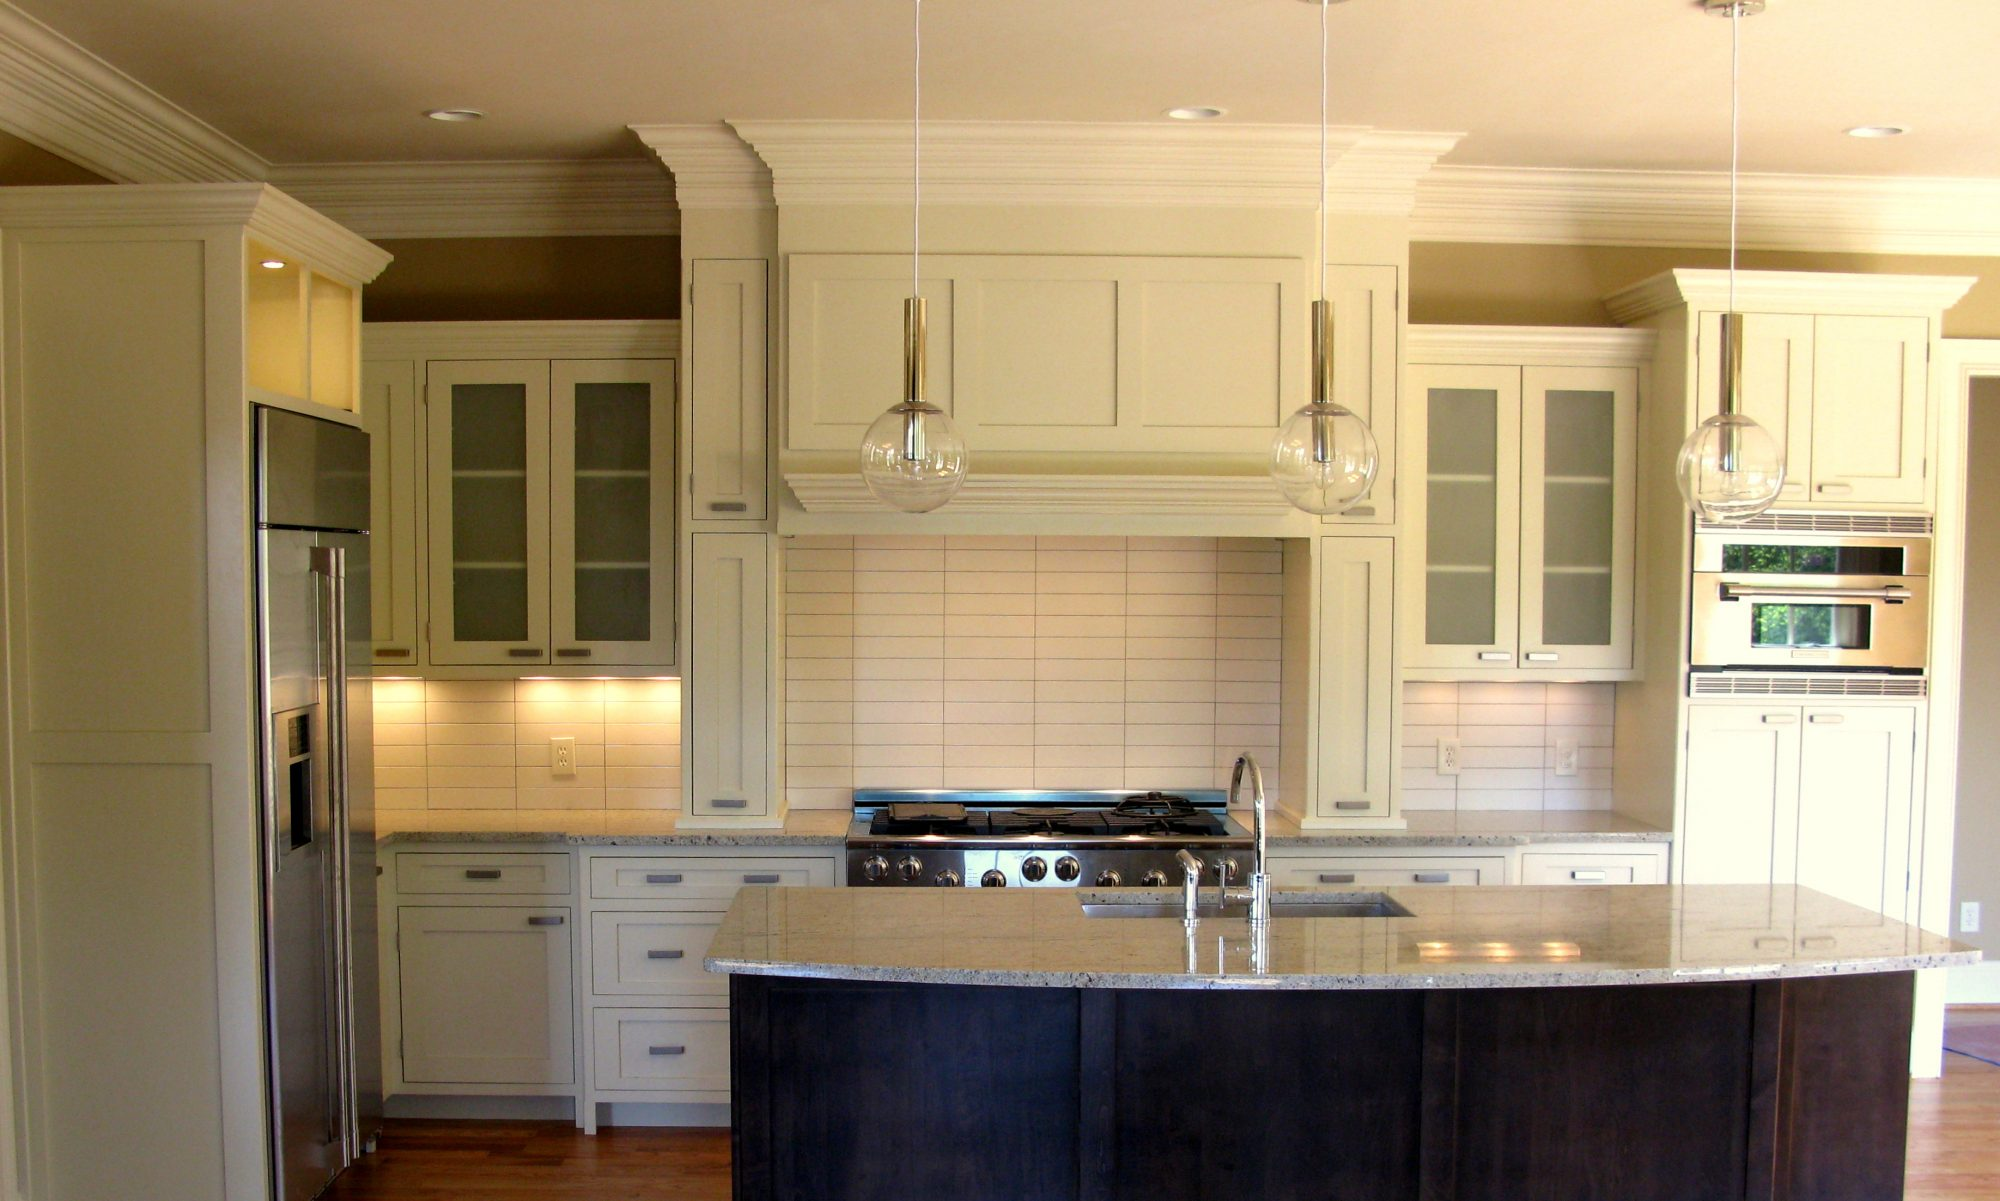 Custom Cabinetry-Palm Beach Kitchen & Bath Remodeling-We do kitchen & bath remodeling, home renovations, custom lighting, custom cabinet installation, cabinet refacing and refinishing, outdoor kitchens, commercial kitchen, countertops, and more